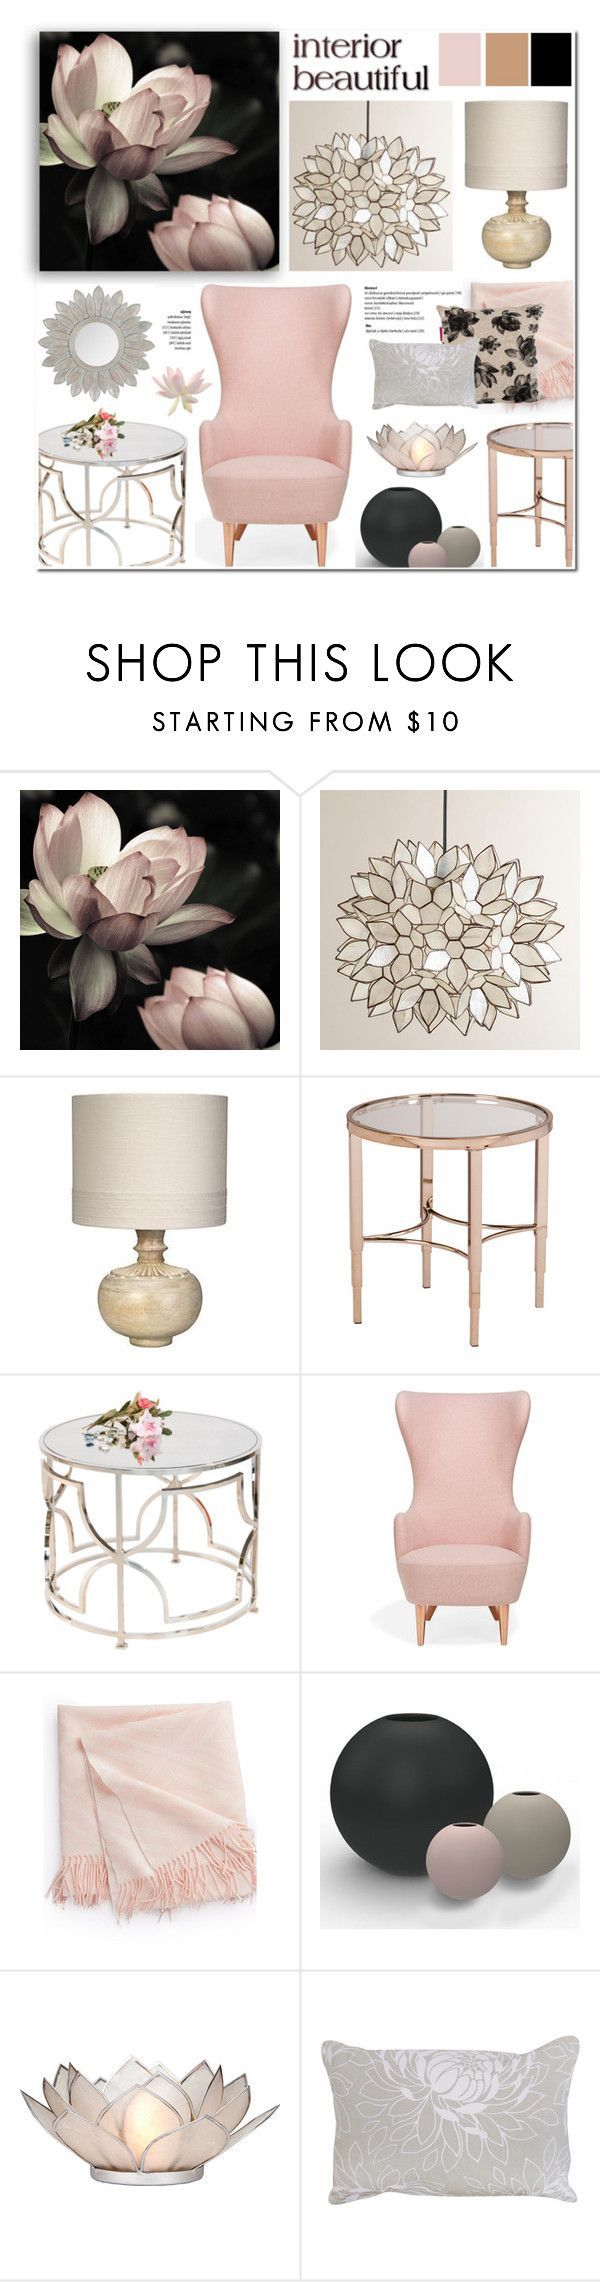 cool Lotus inspired home decor by http://www.best100homedecorpics.club/home-decor-accessories/lotus-inspired-home-decor/